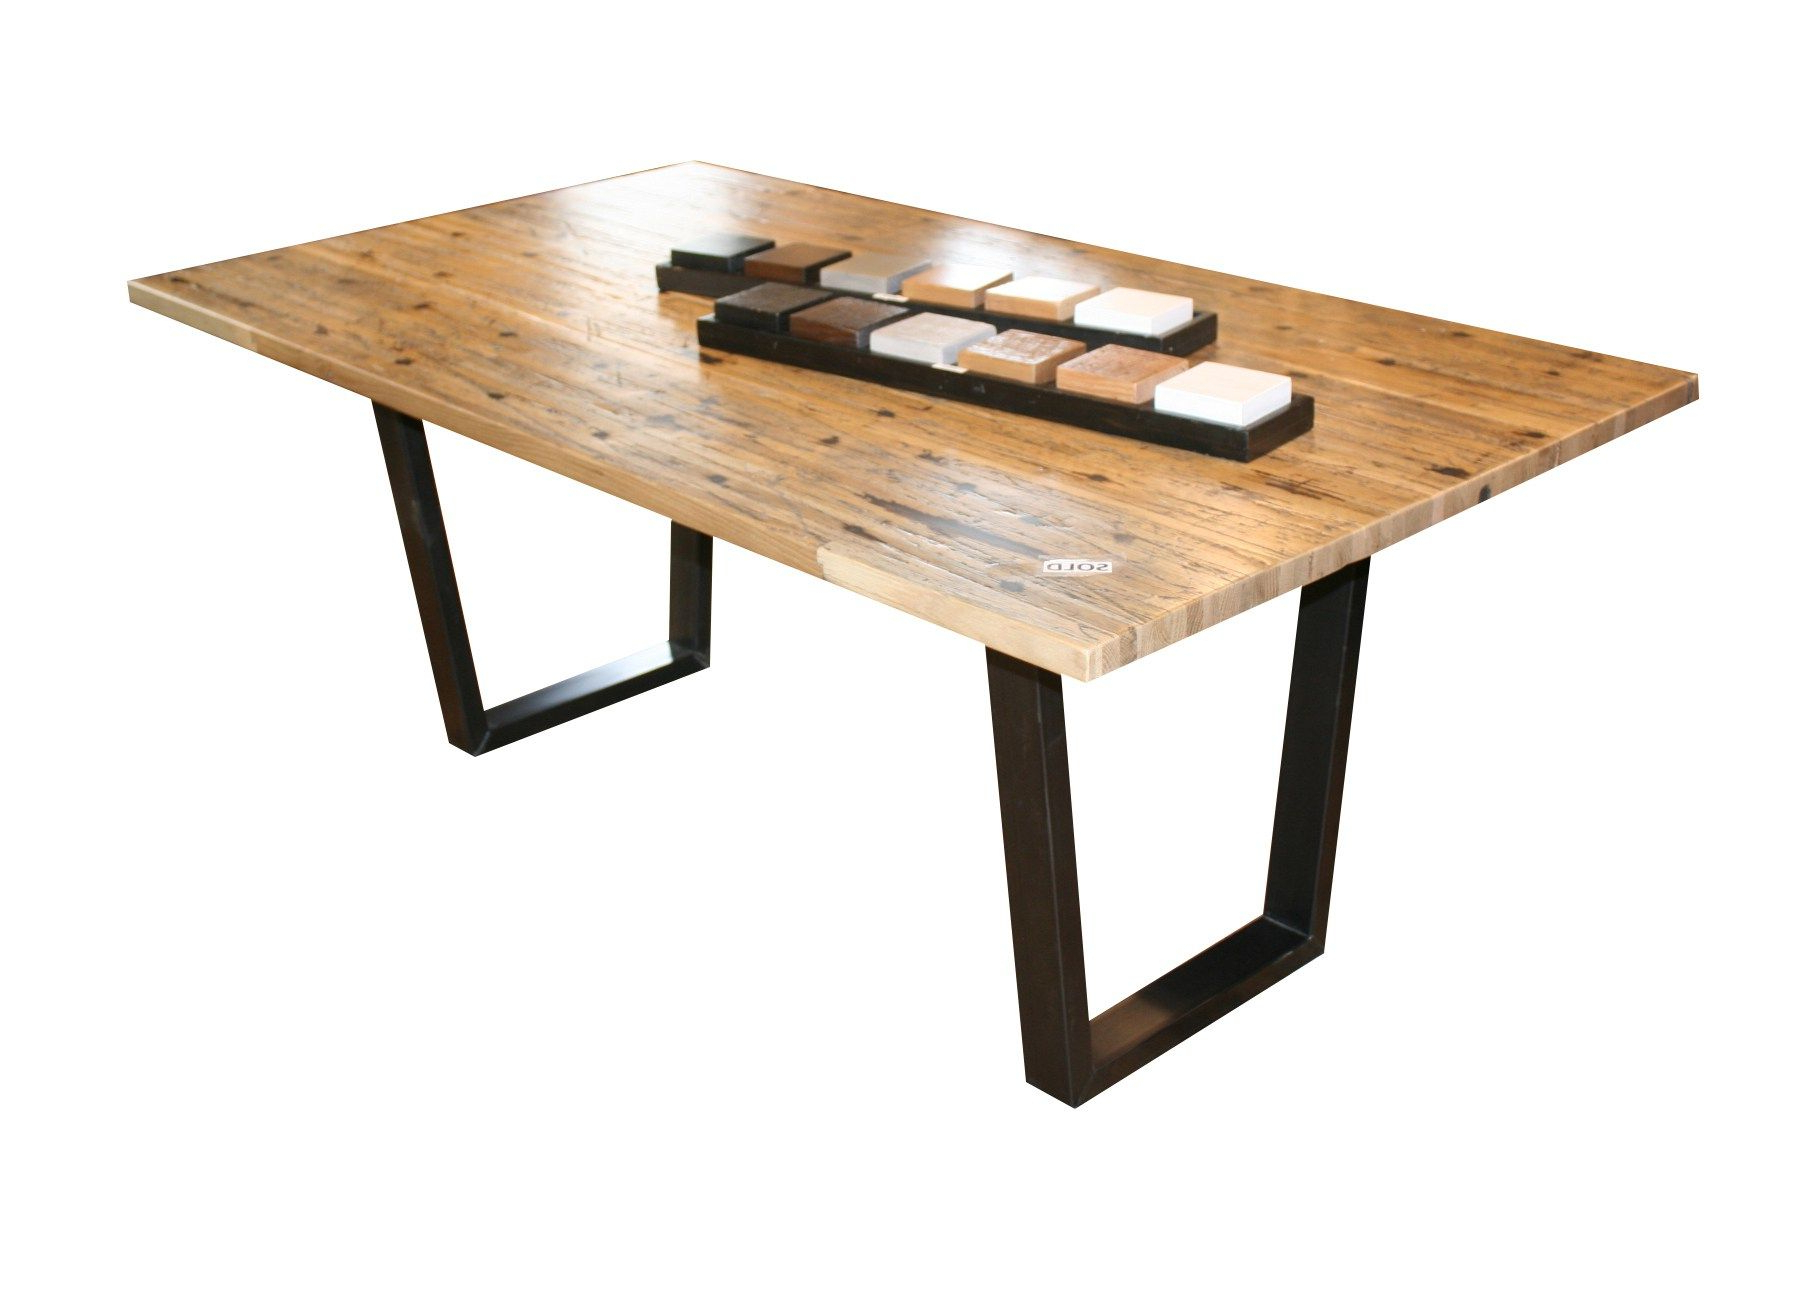 Dining Tables With Black U Legs Throughout Most Up To Date Maple Semi Truck U Leg Dining Table This Dining Table (View 12 of 30)